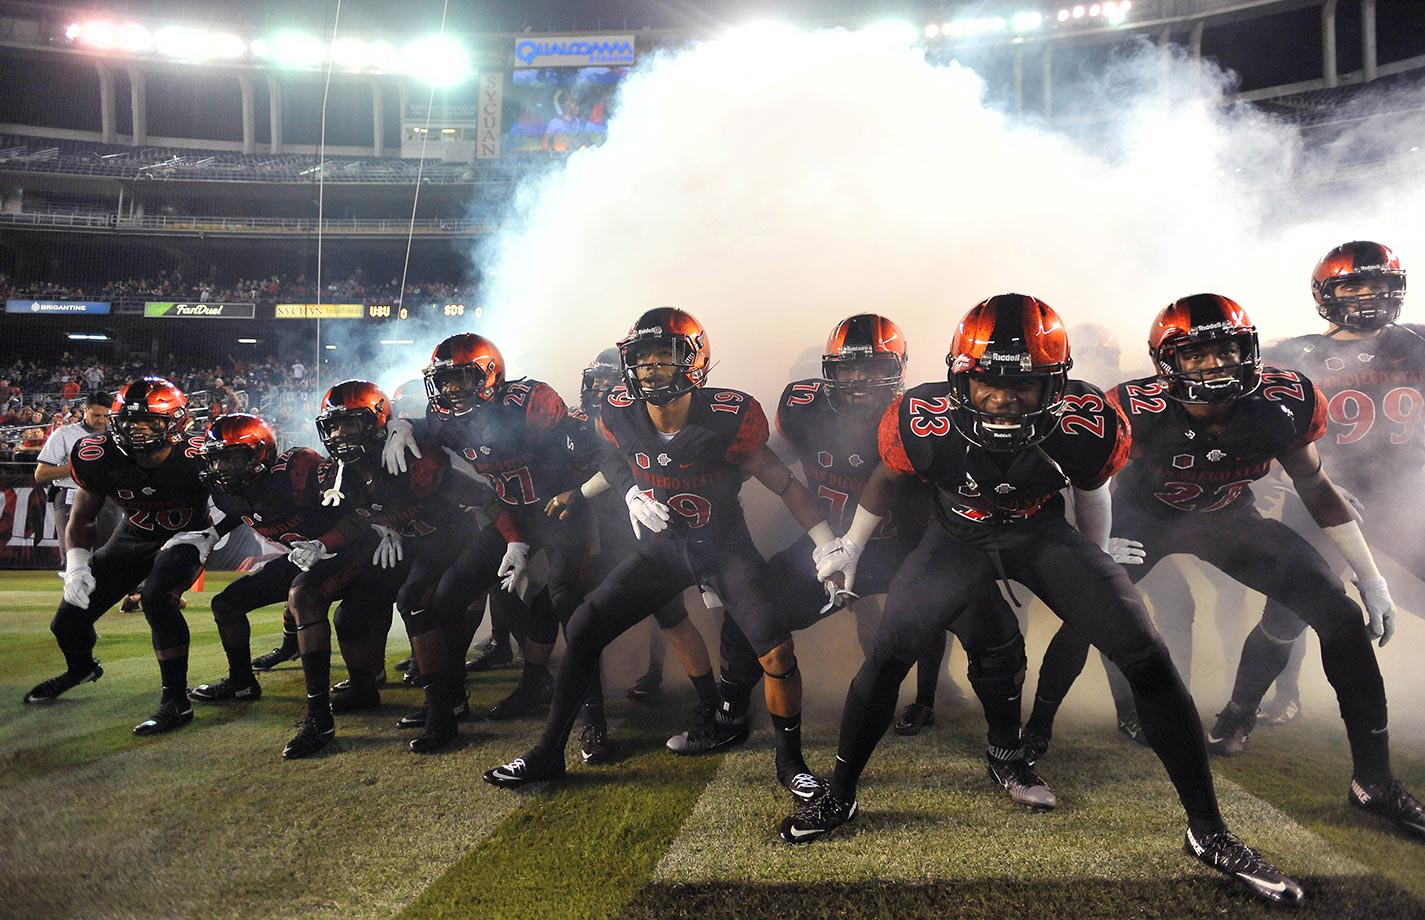 San Diego State Aztecs players enter the field before a game against Utah State. The Aztecs won 48-14.